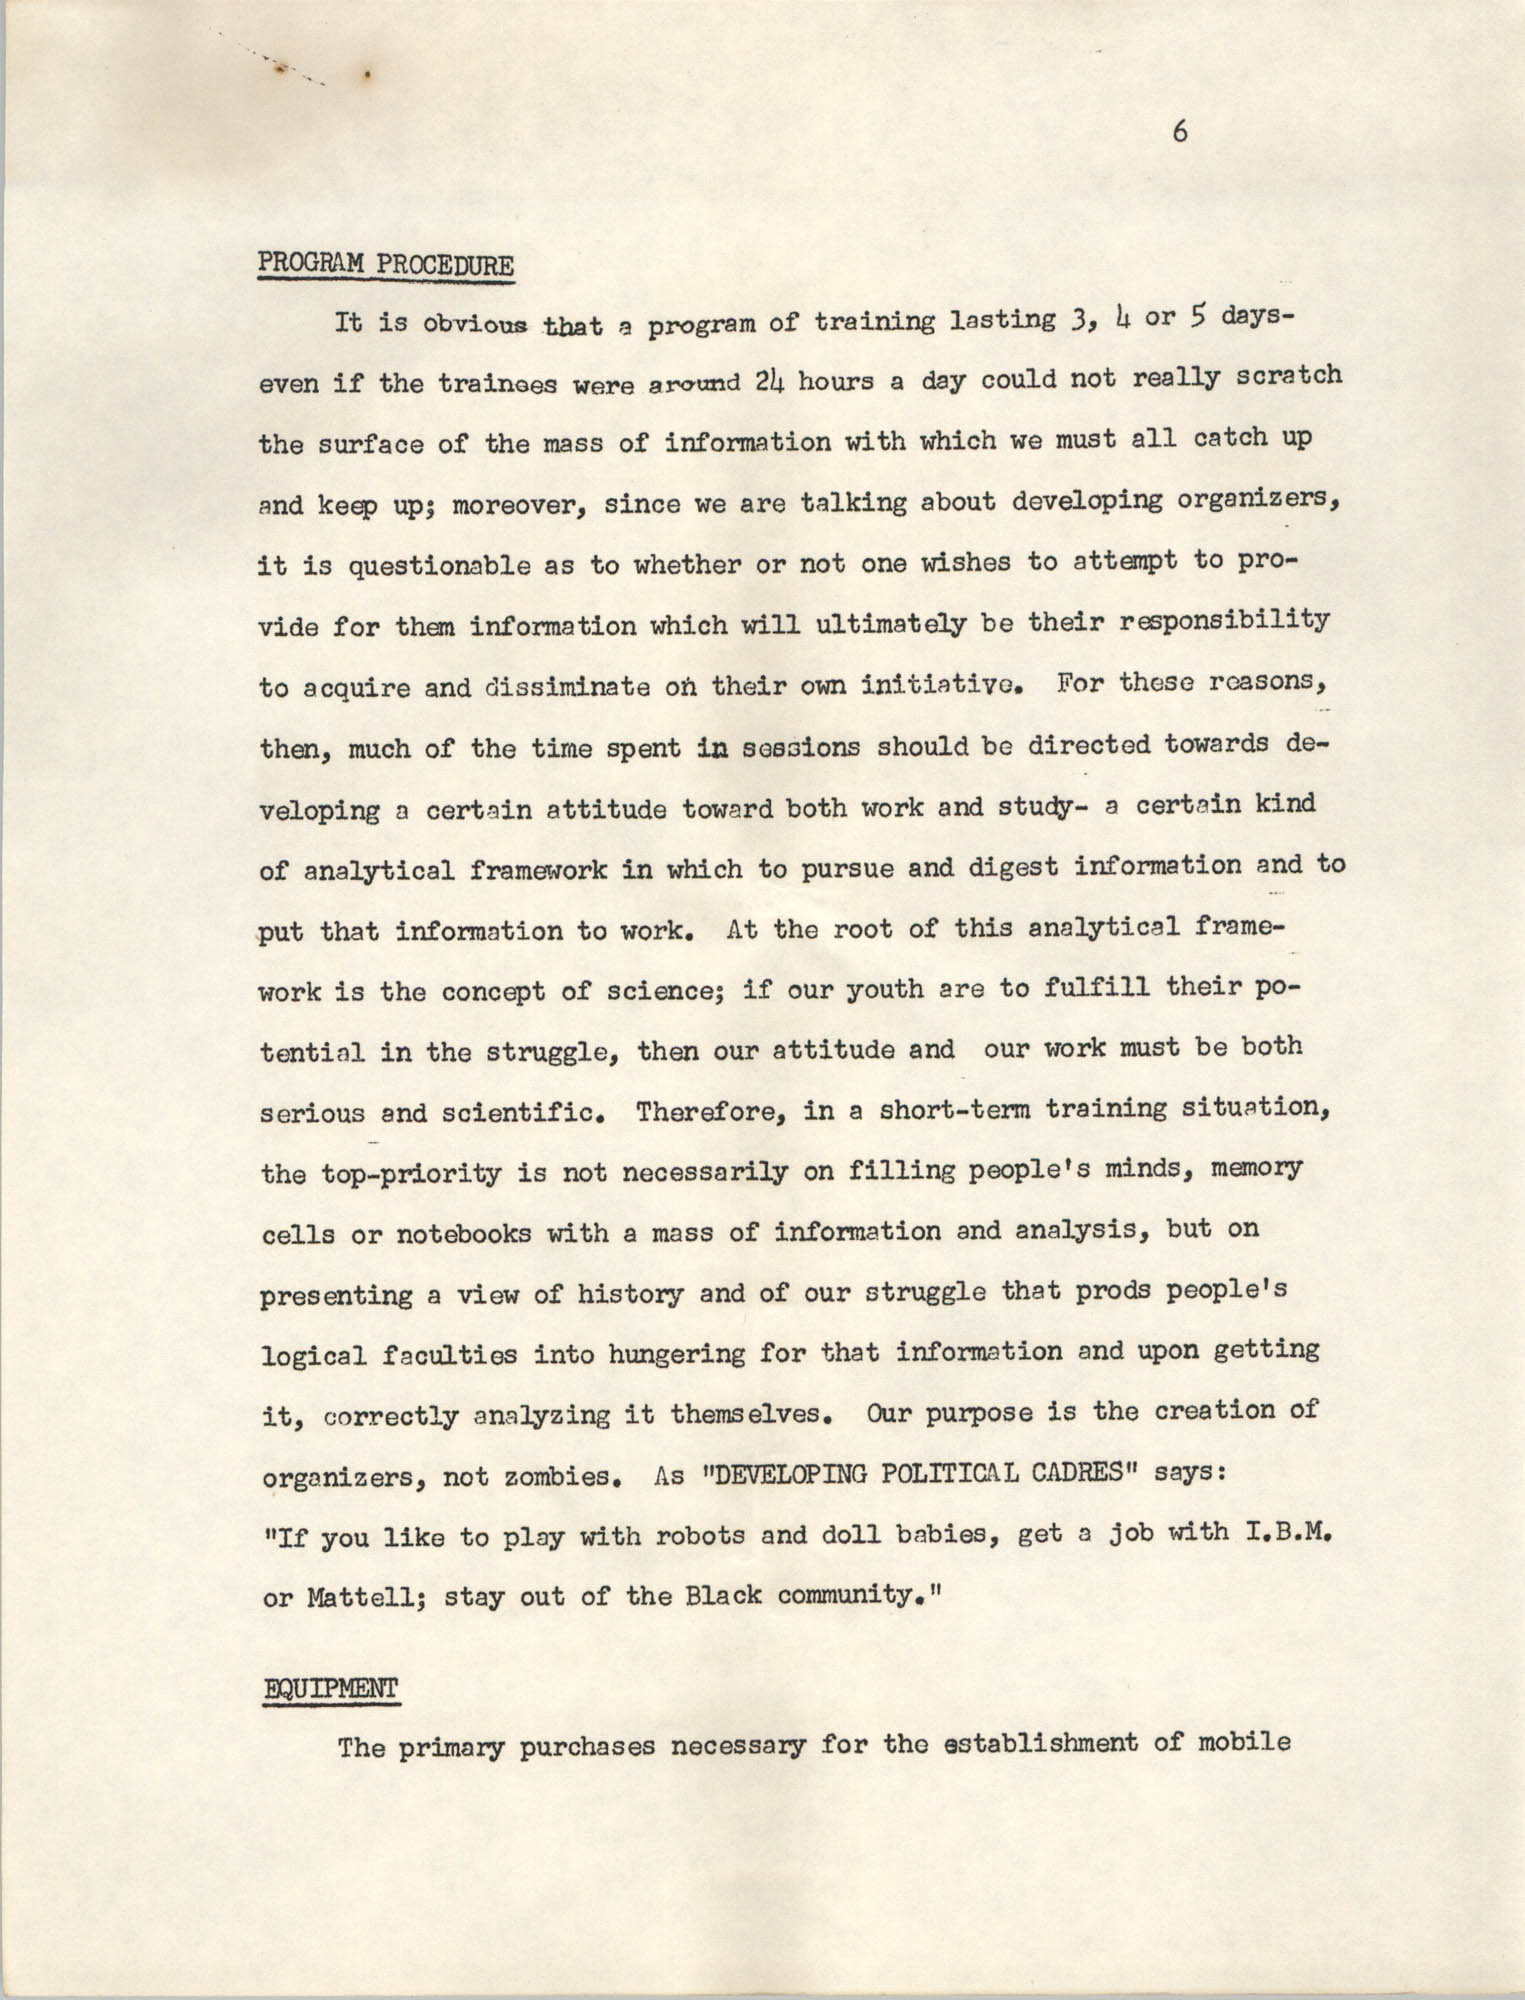 A Proposal for the Development of a Training Institute, Page 6